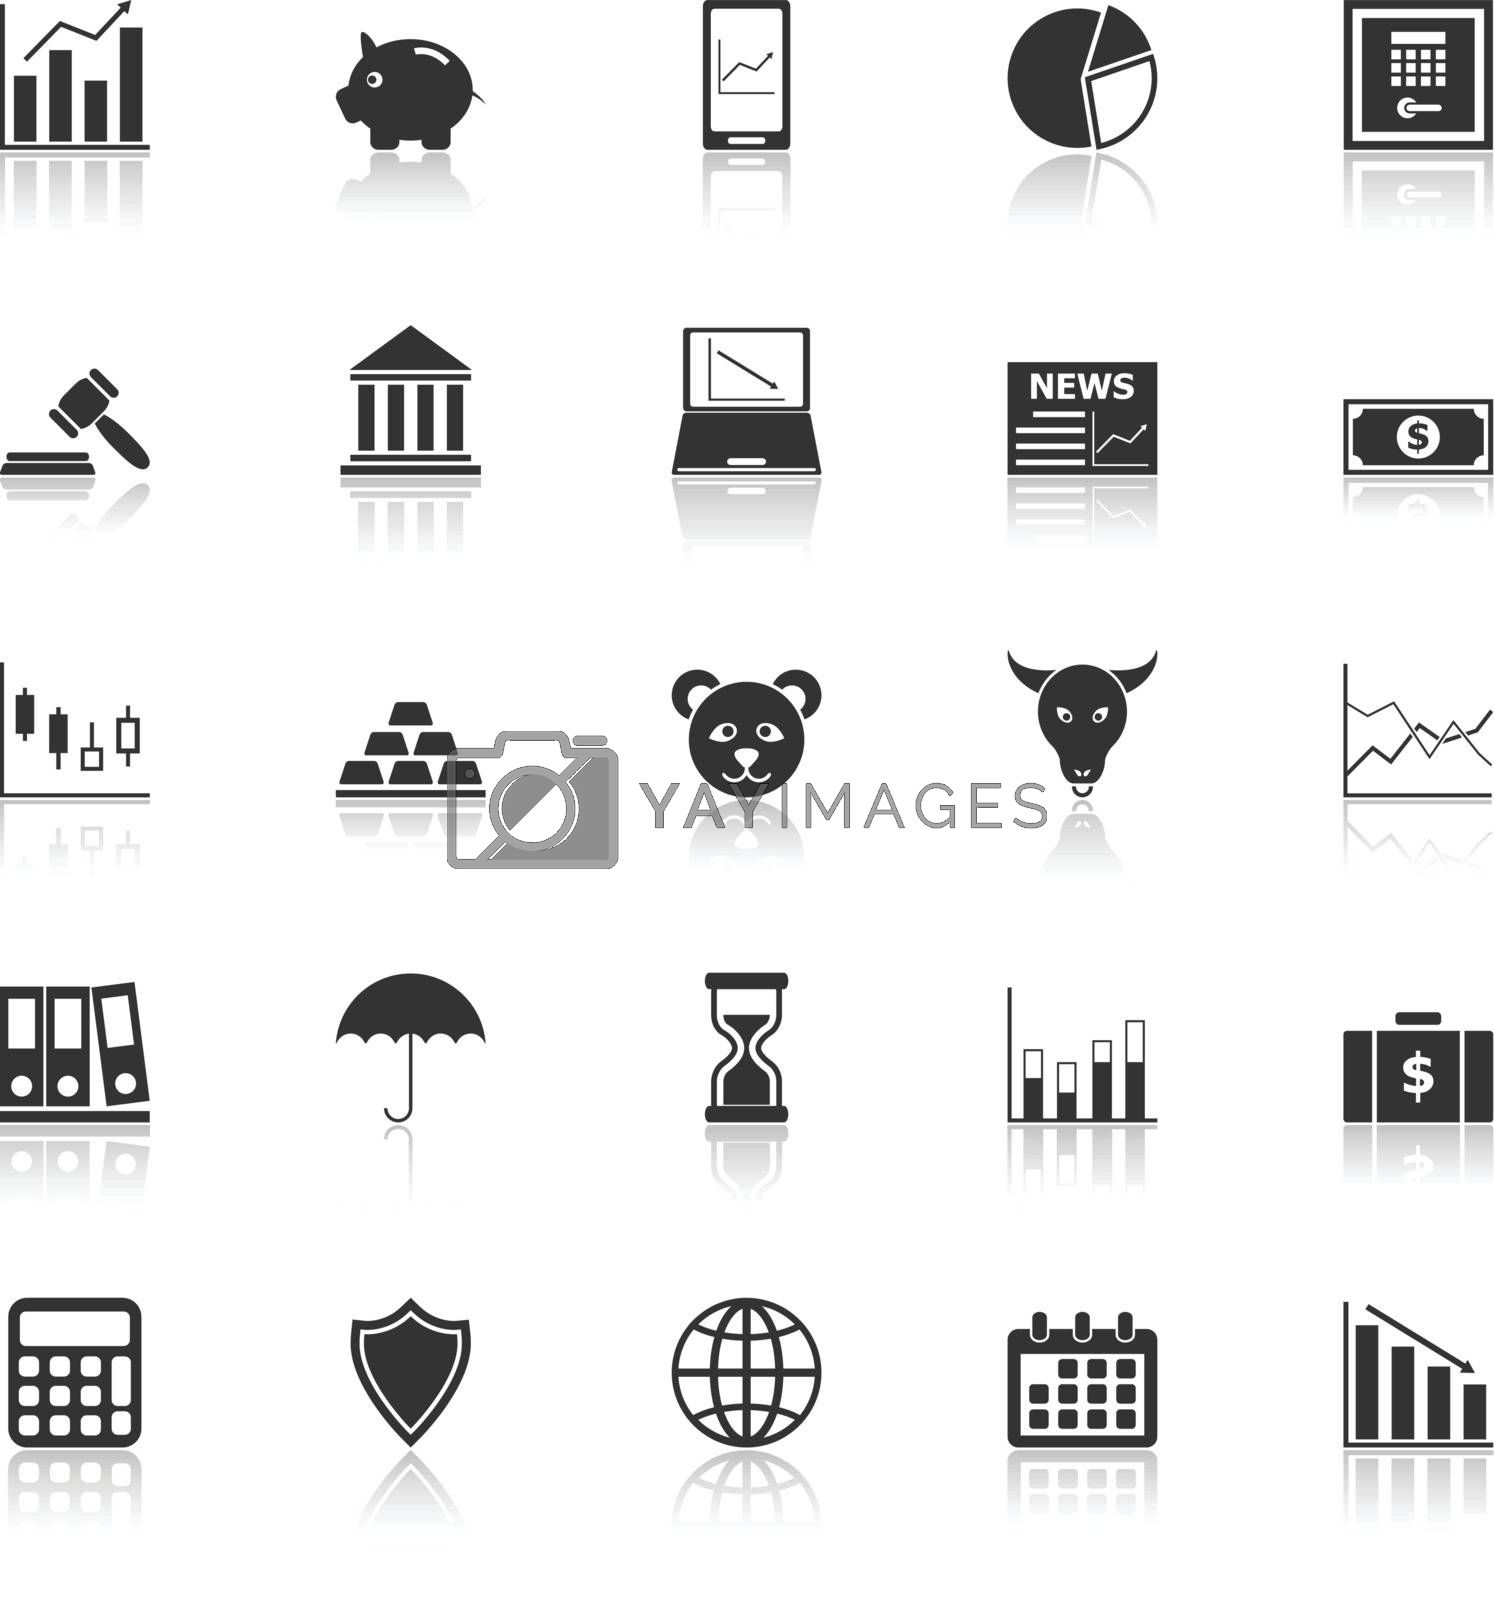 Stock market icons with reflect on white background, stock vector